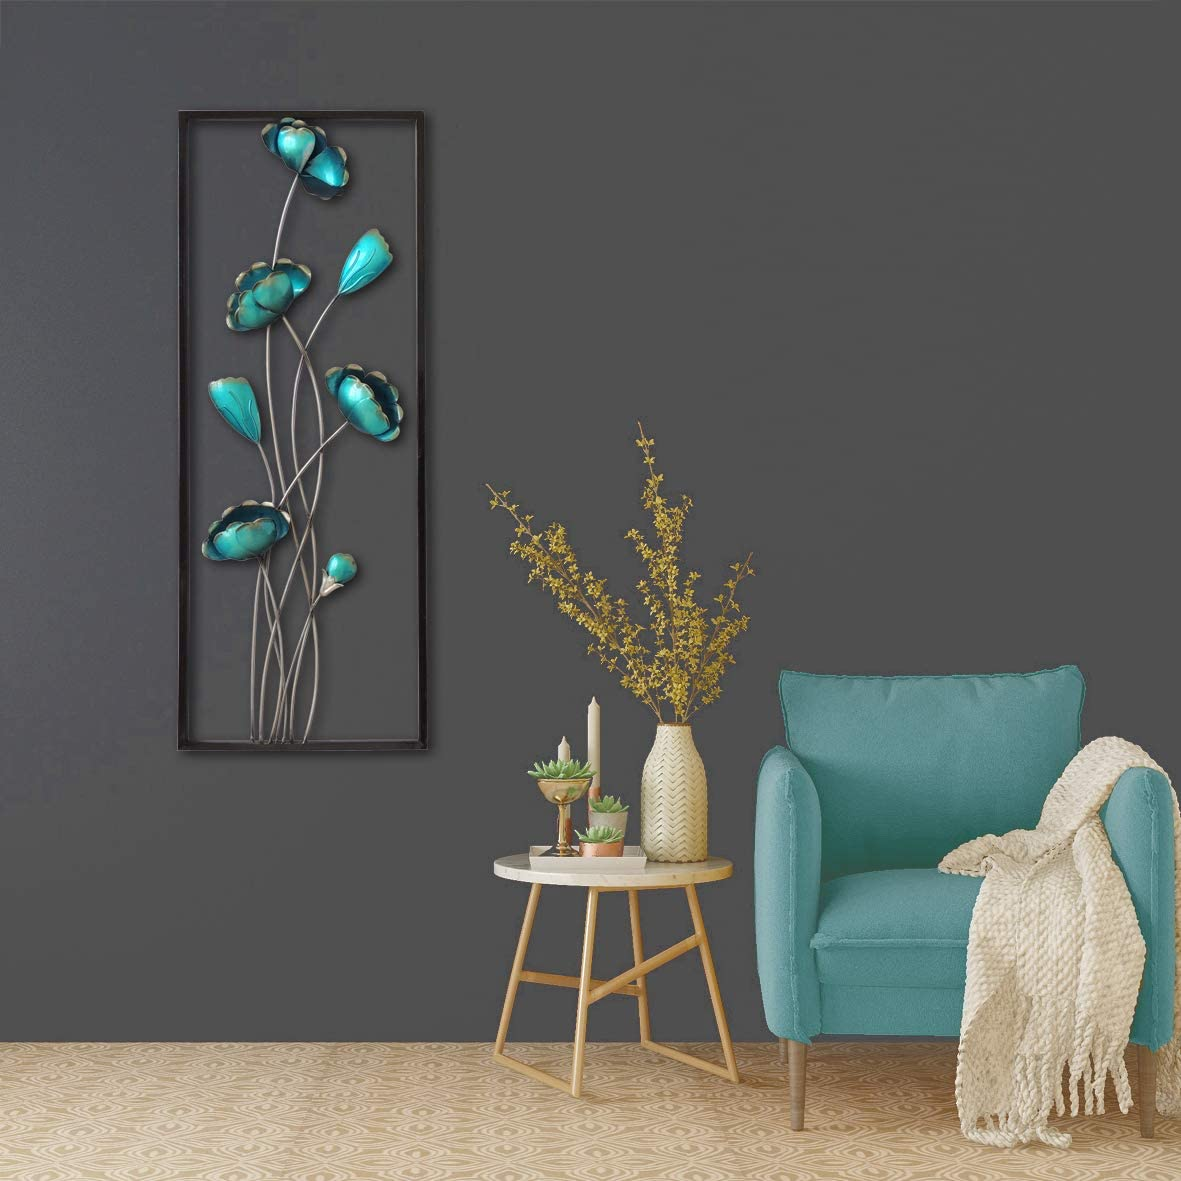 "All American Collection New Modern Chic Aluminum/Metal Wall Decor Frame 12""x30"" (Turquoise Closed Flowers)"